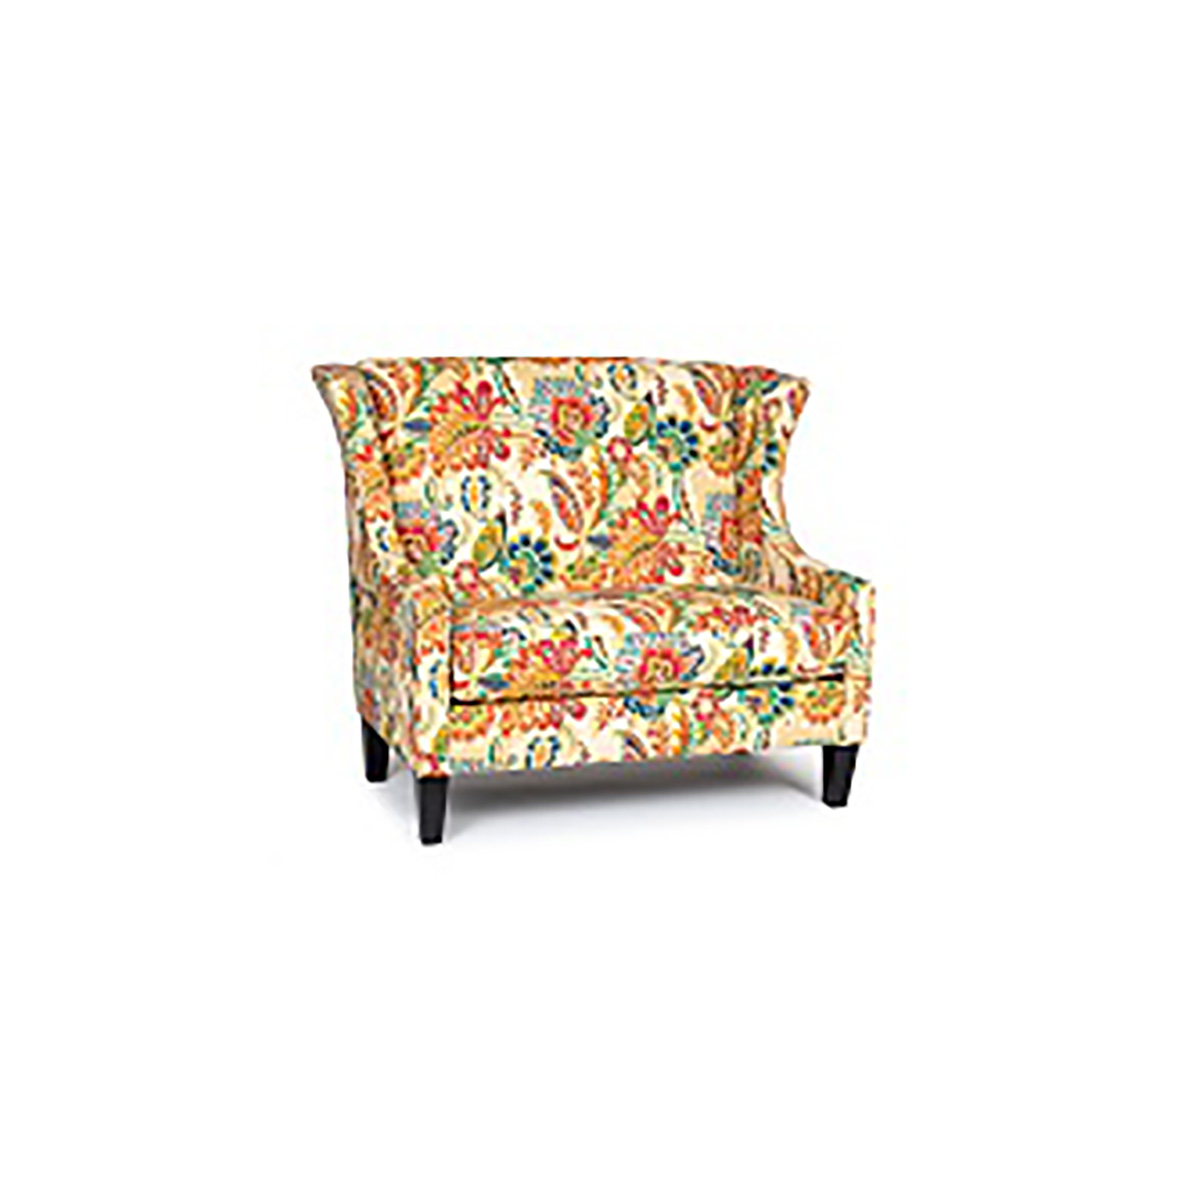 Chelsea Home Granby Chair - Multicolor